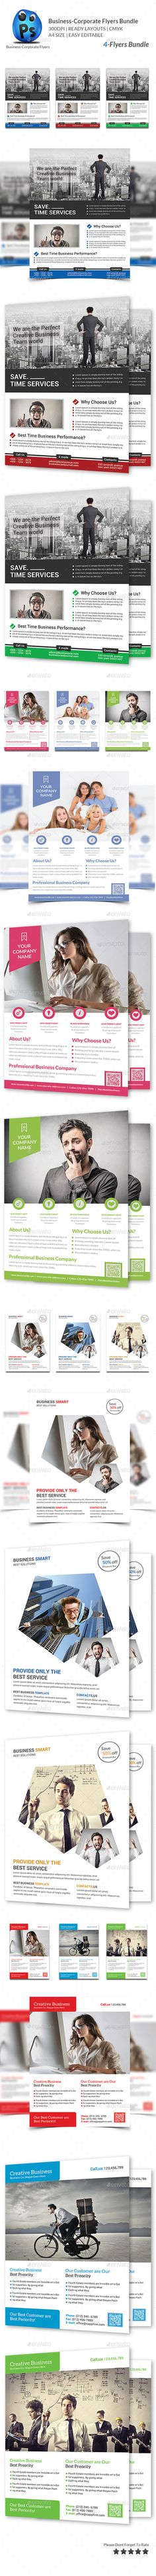 Corporate Business 4 Flyer Bundle - Corporate Flyer Template PSD. Download here: http://graphicriver.net/item/corporate-business-4-flyer-bundle/10191804?s_rank=1792&ref=yinkira